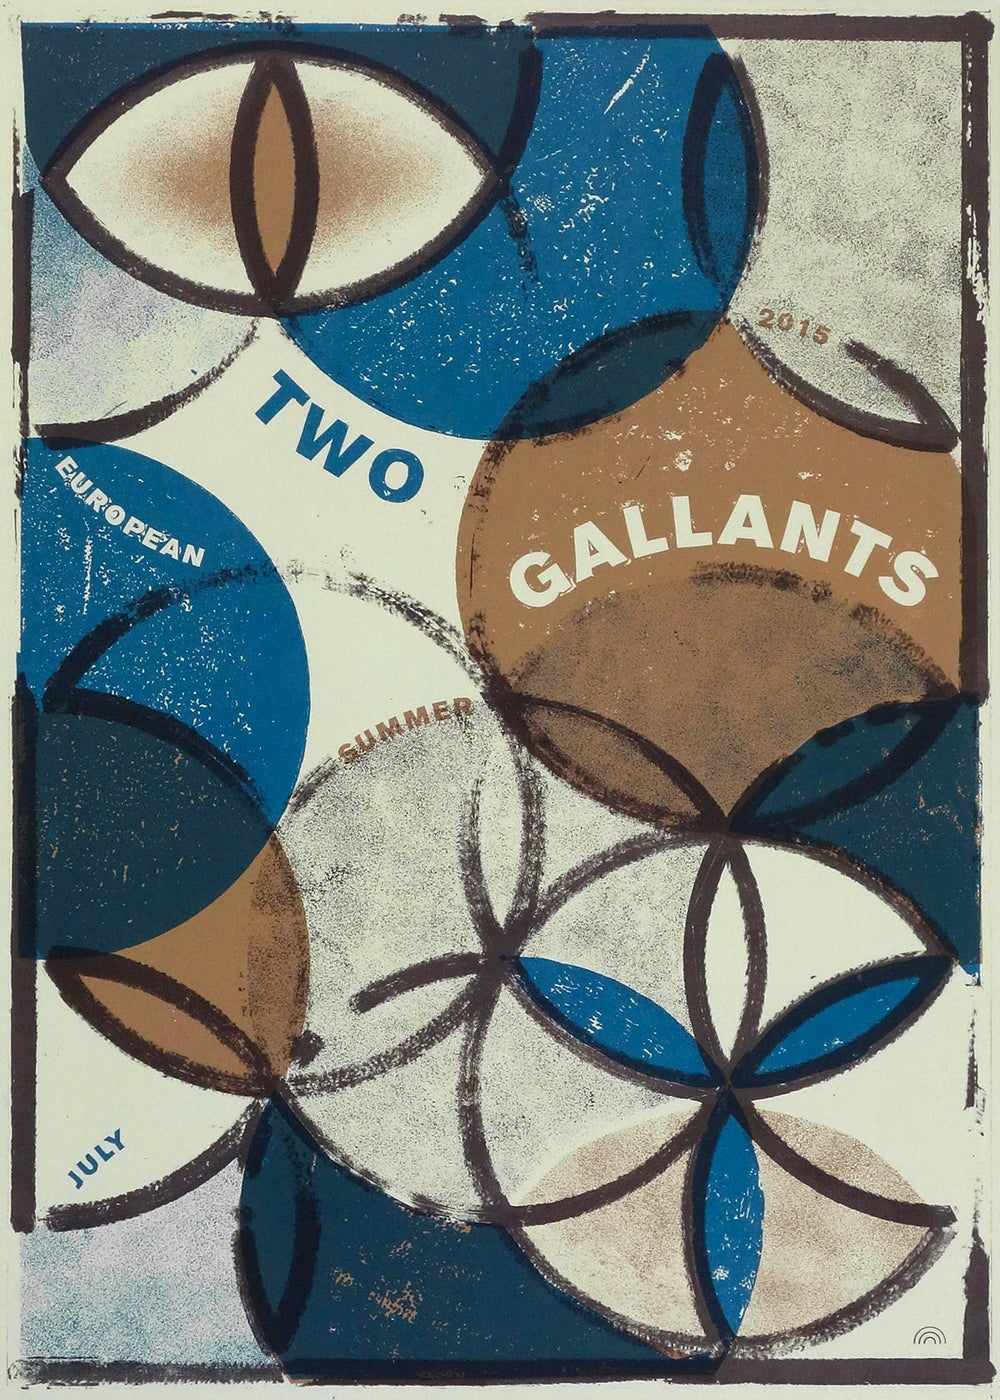 Image of TWO GALLANTS